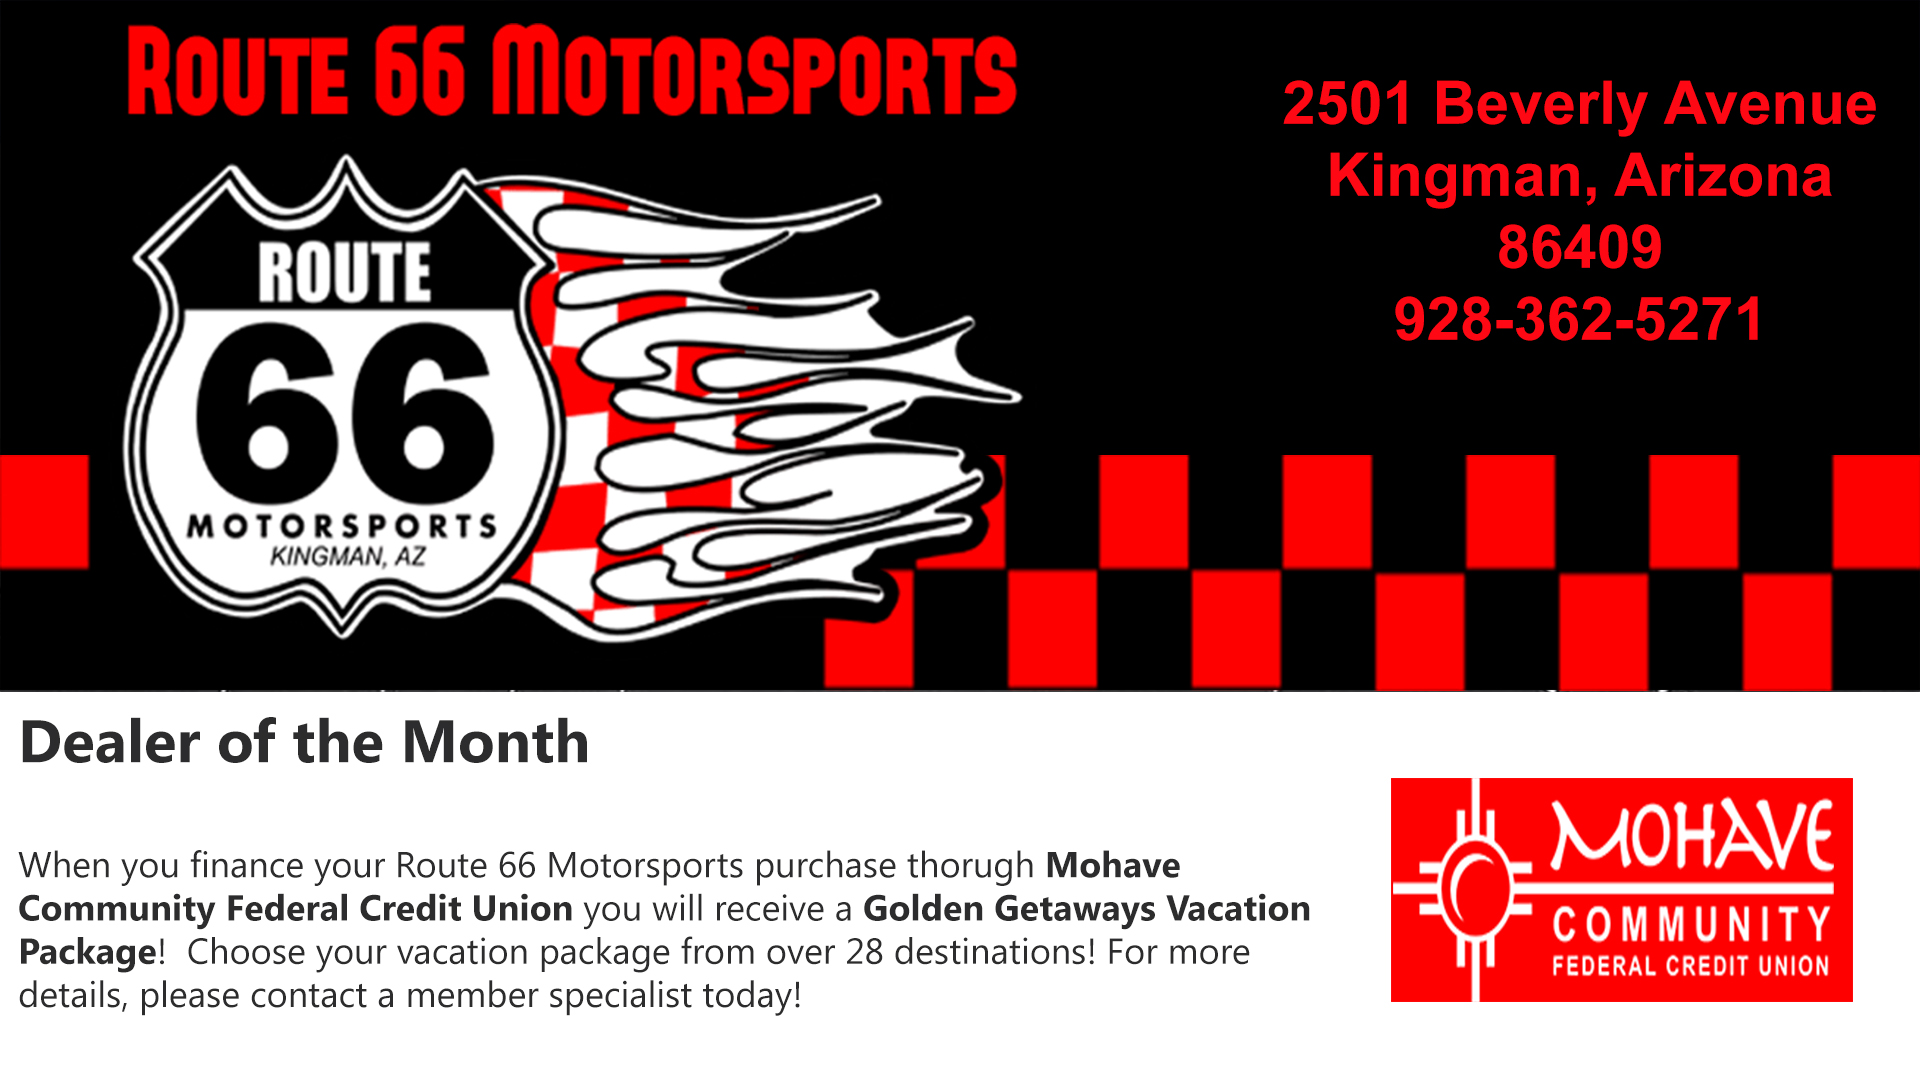 Route 66 Motorsports - Dealer of the Month